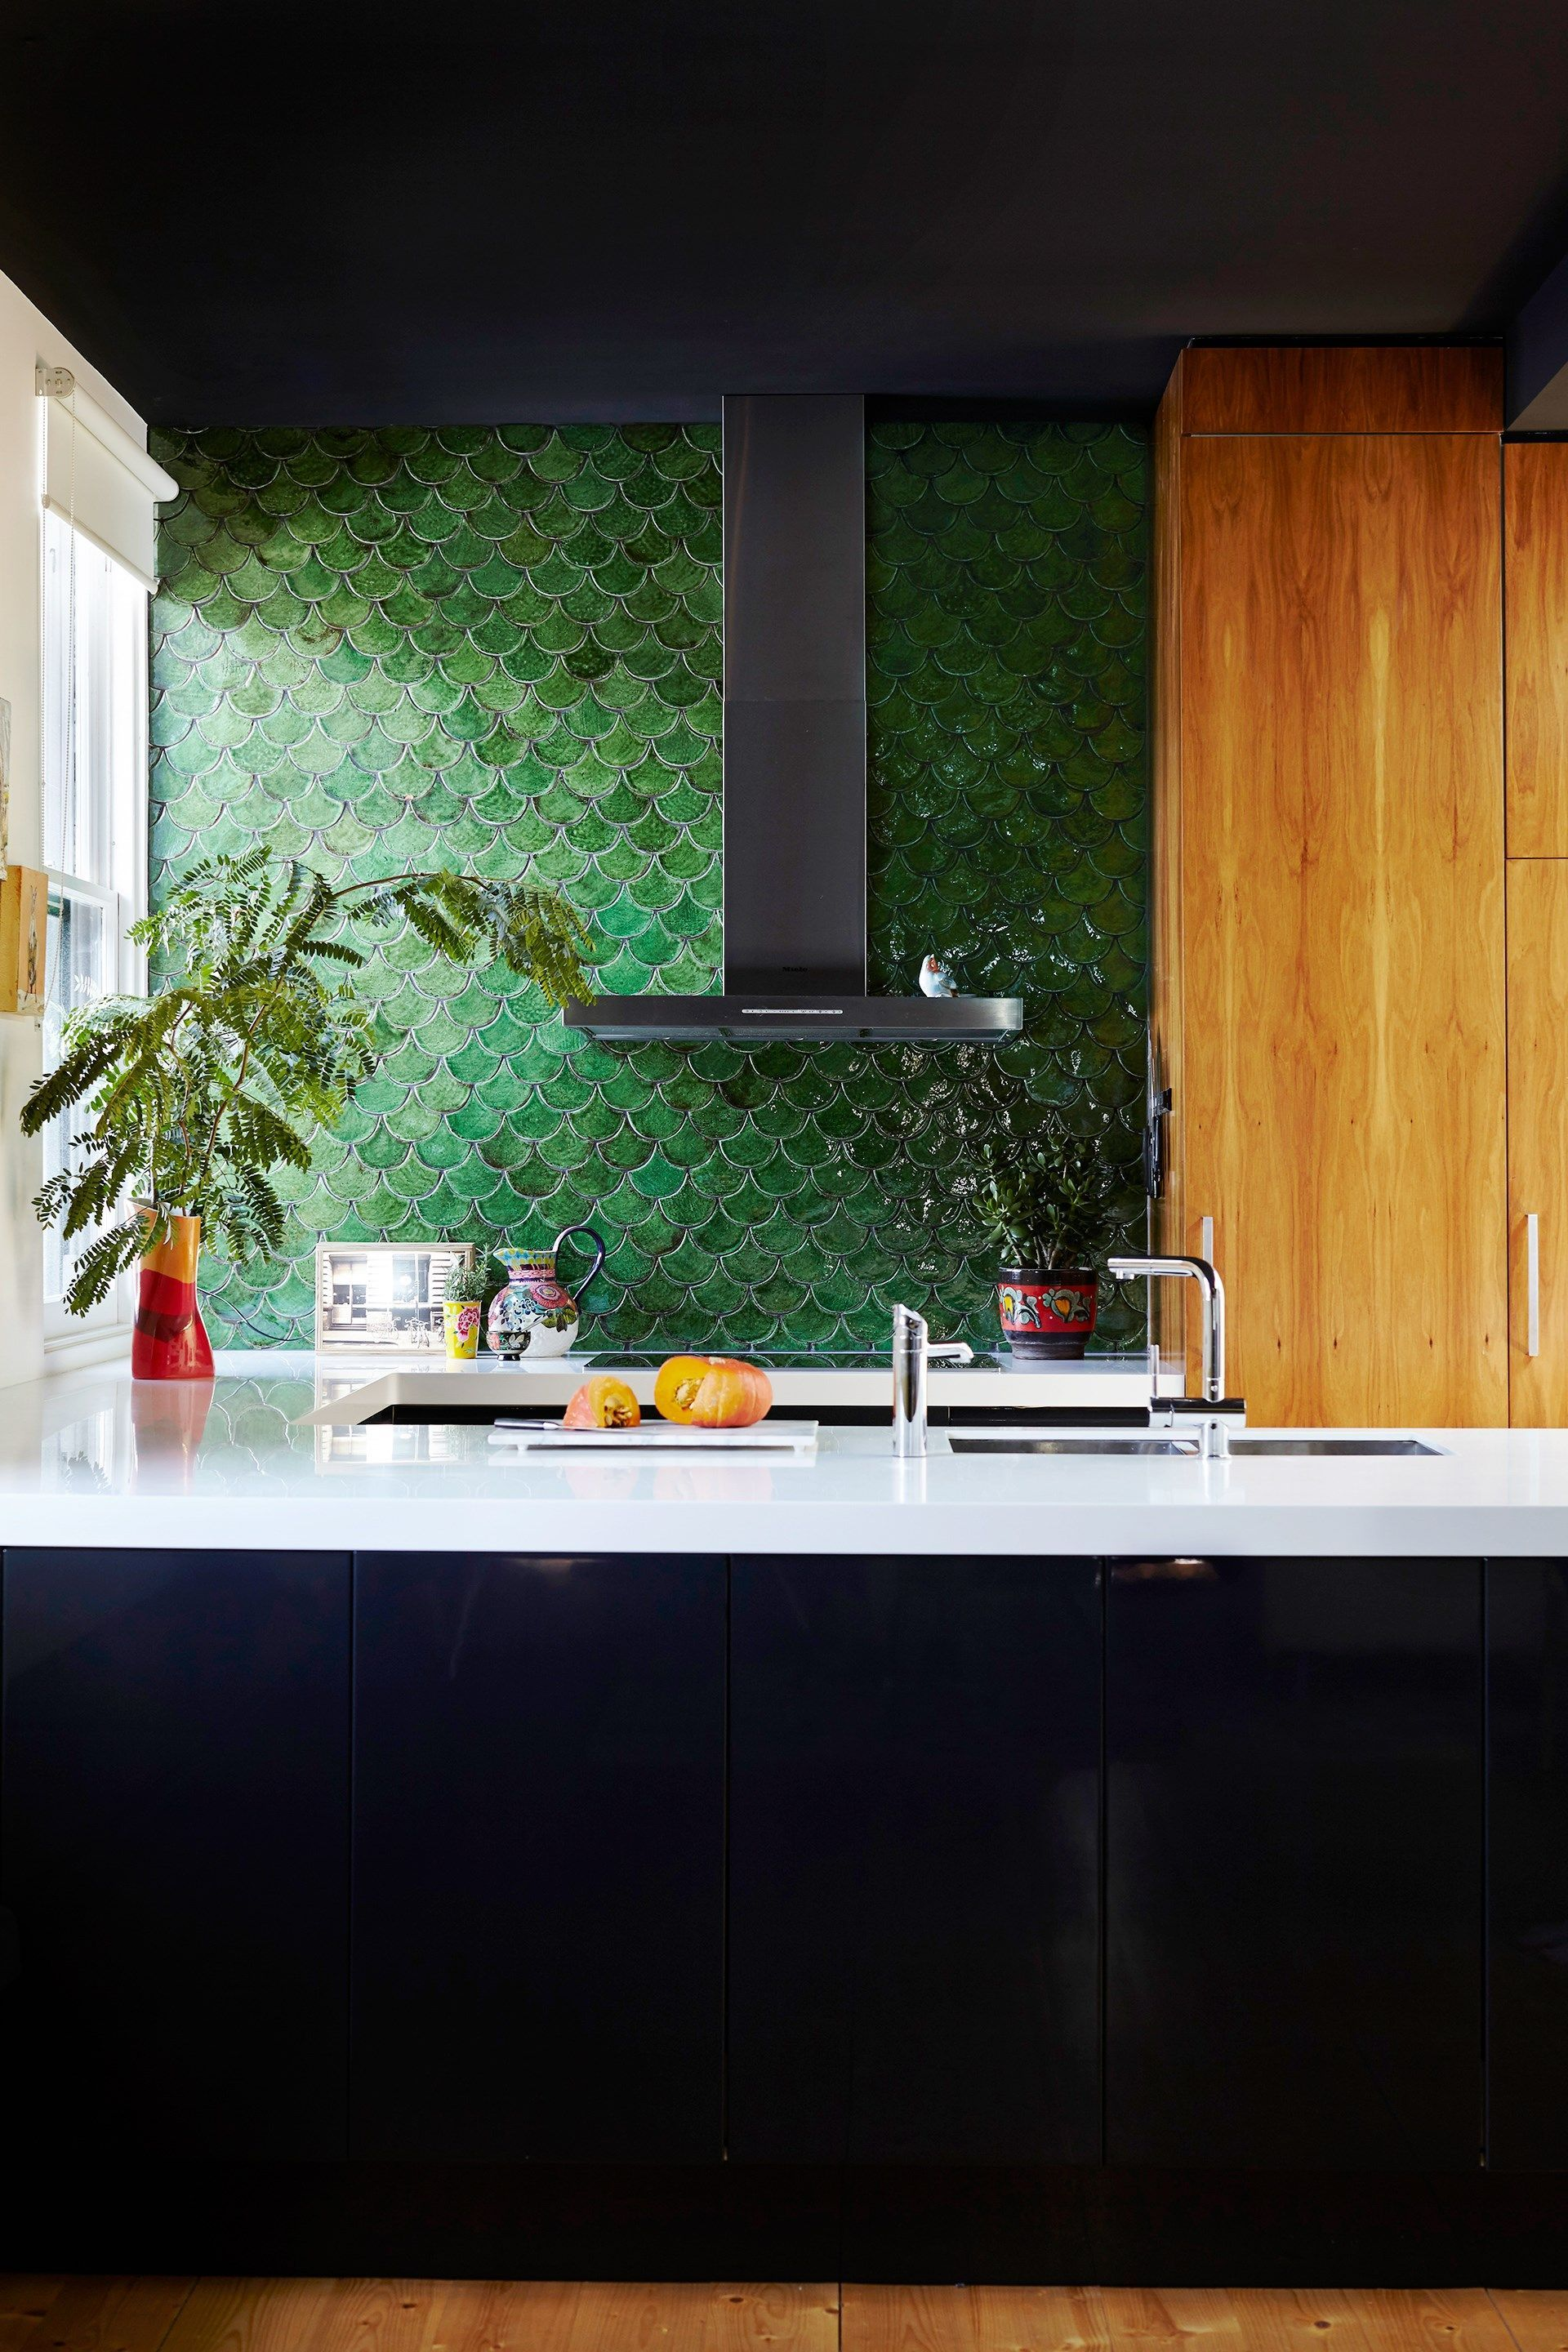 Olivegreen fishscalepatterned tiles add character to the